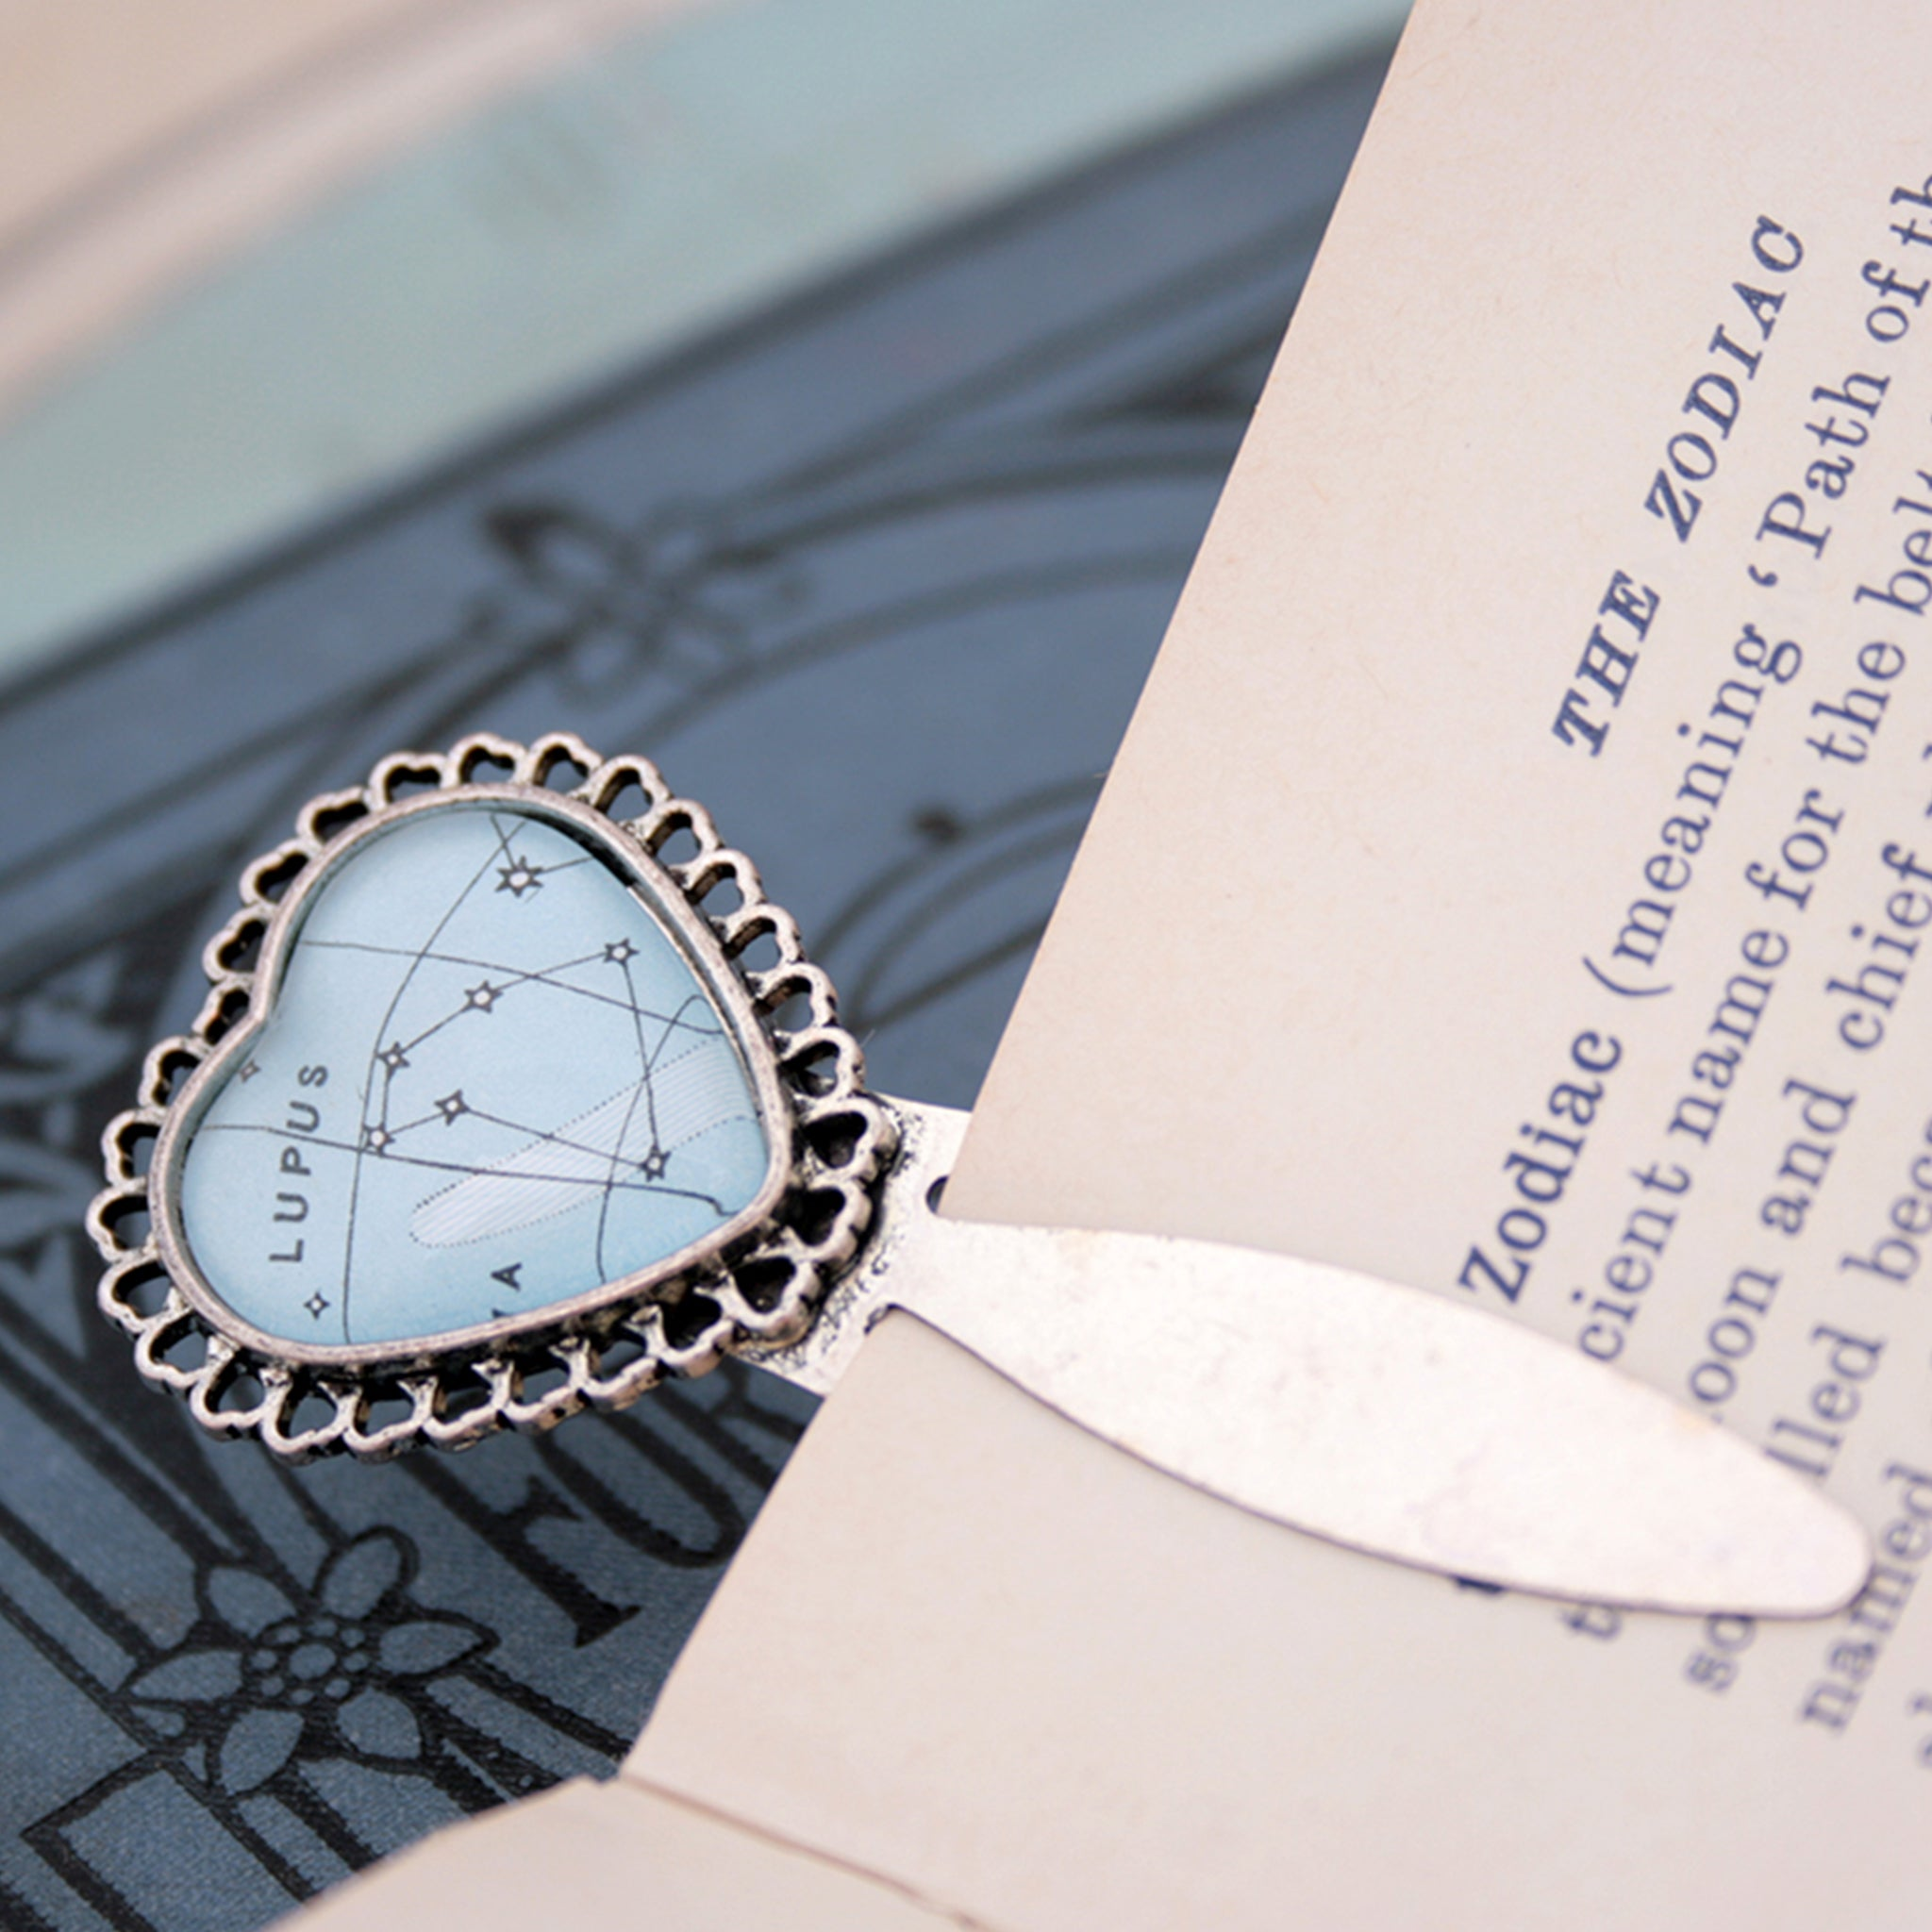 Silver heart metal bookmark featuring Lupus constellation